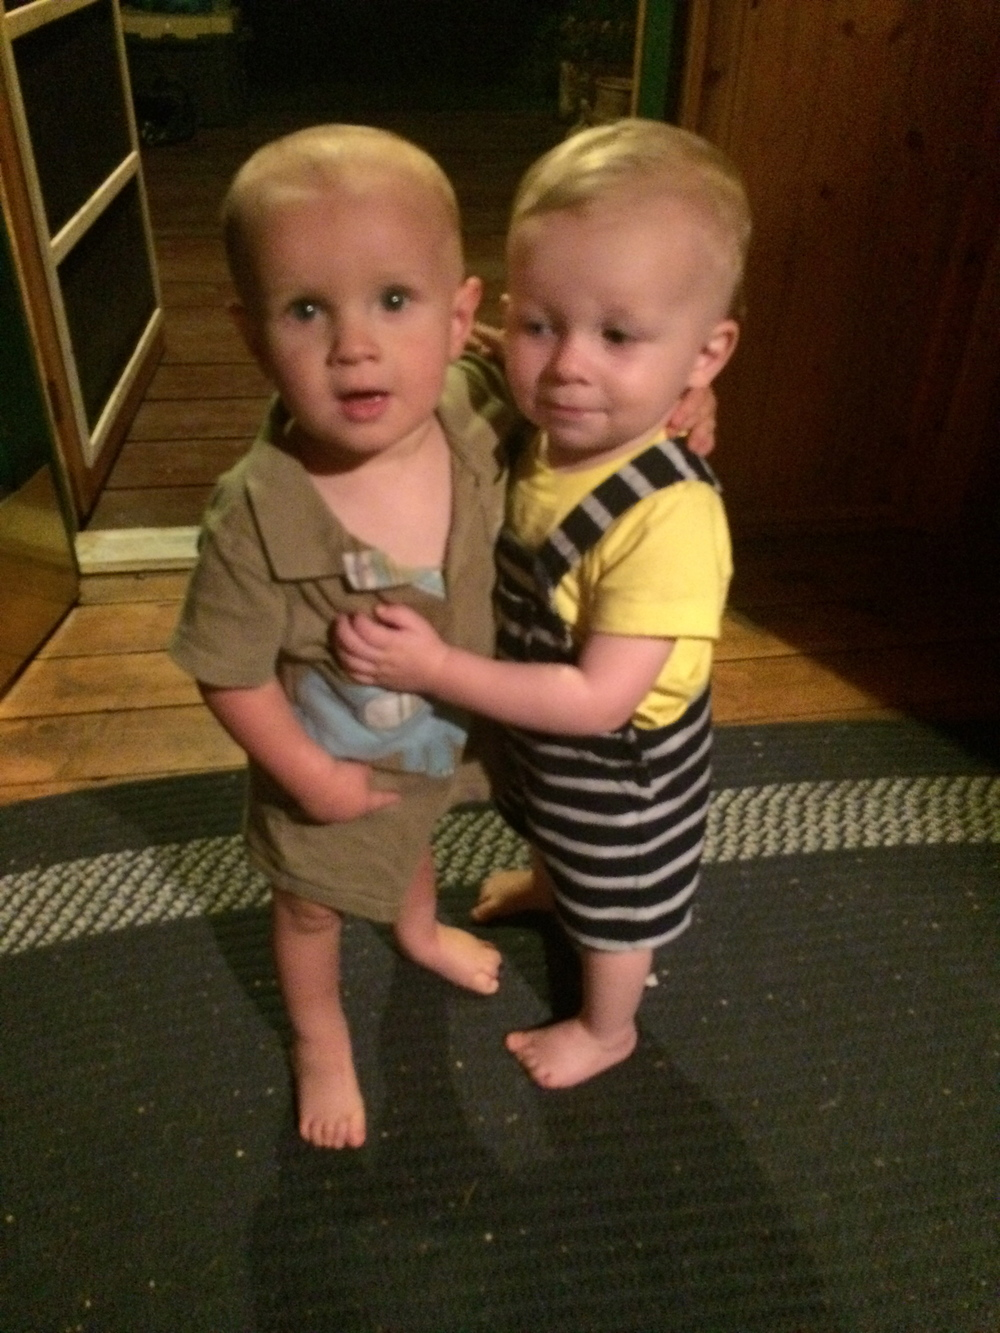 When he could catch Finn, Lucas (one month older) LOVED him and gave him hugs.